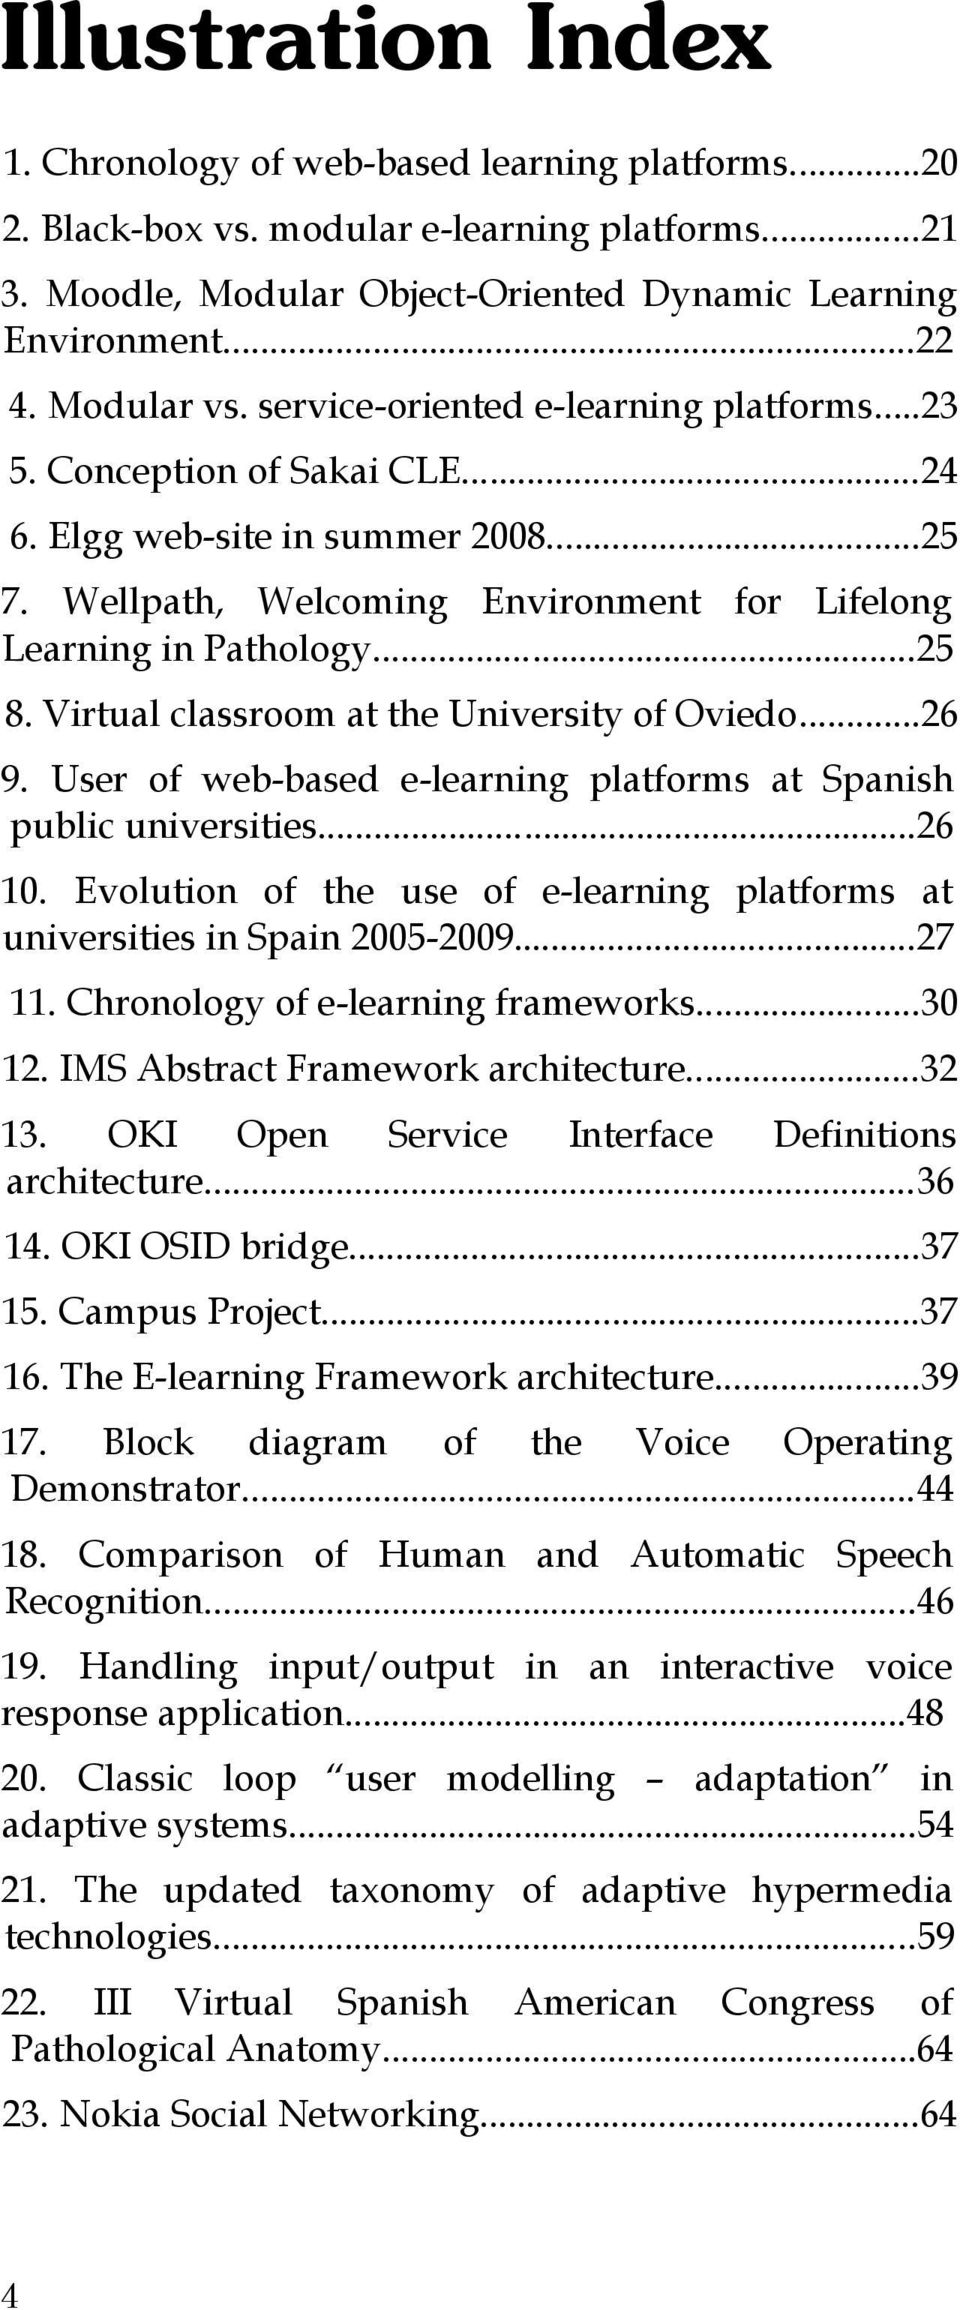 Virtual classroom at the University of Oviedo...26 9. User of web-based e-learning platforms at Spanish public universities...26 10.